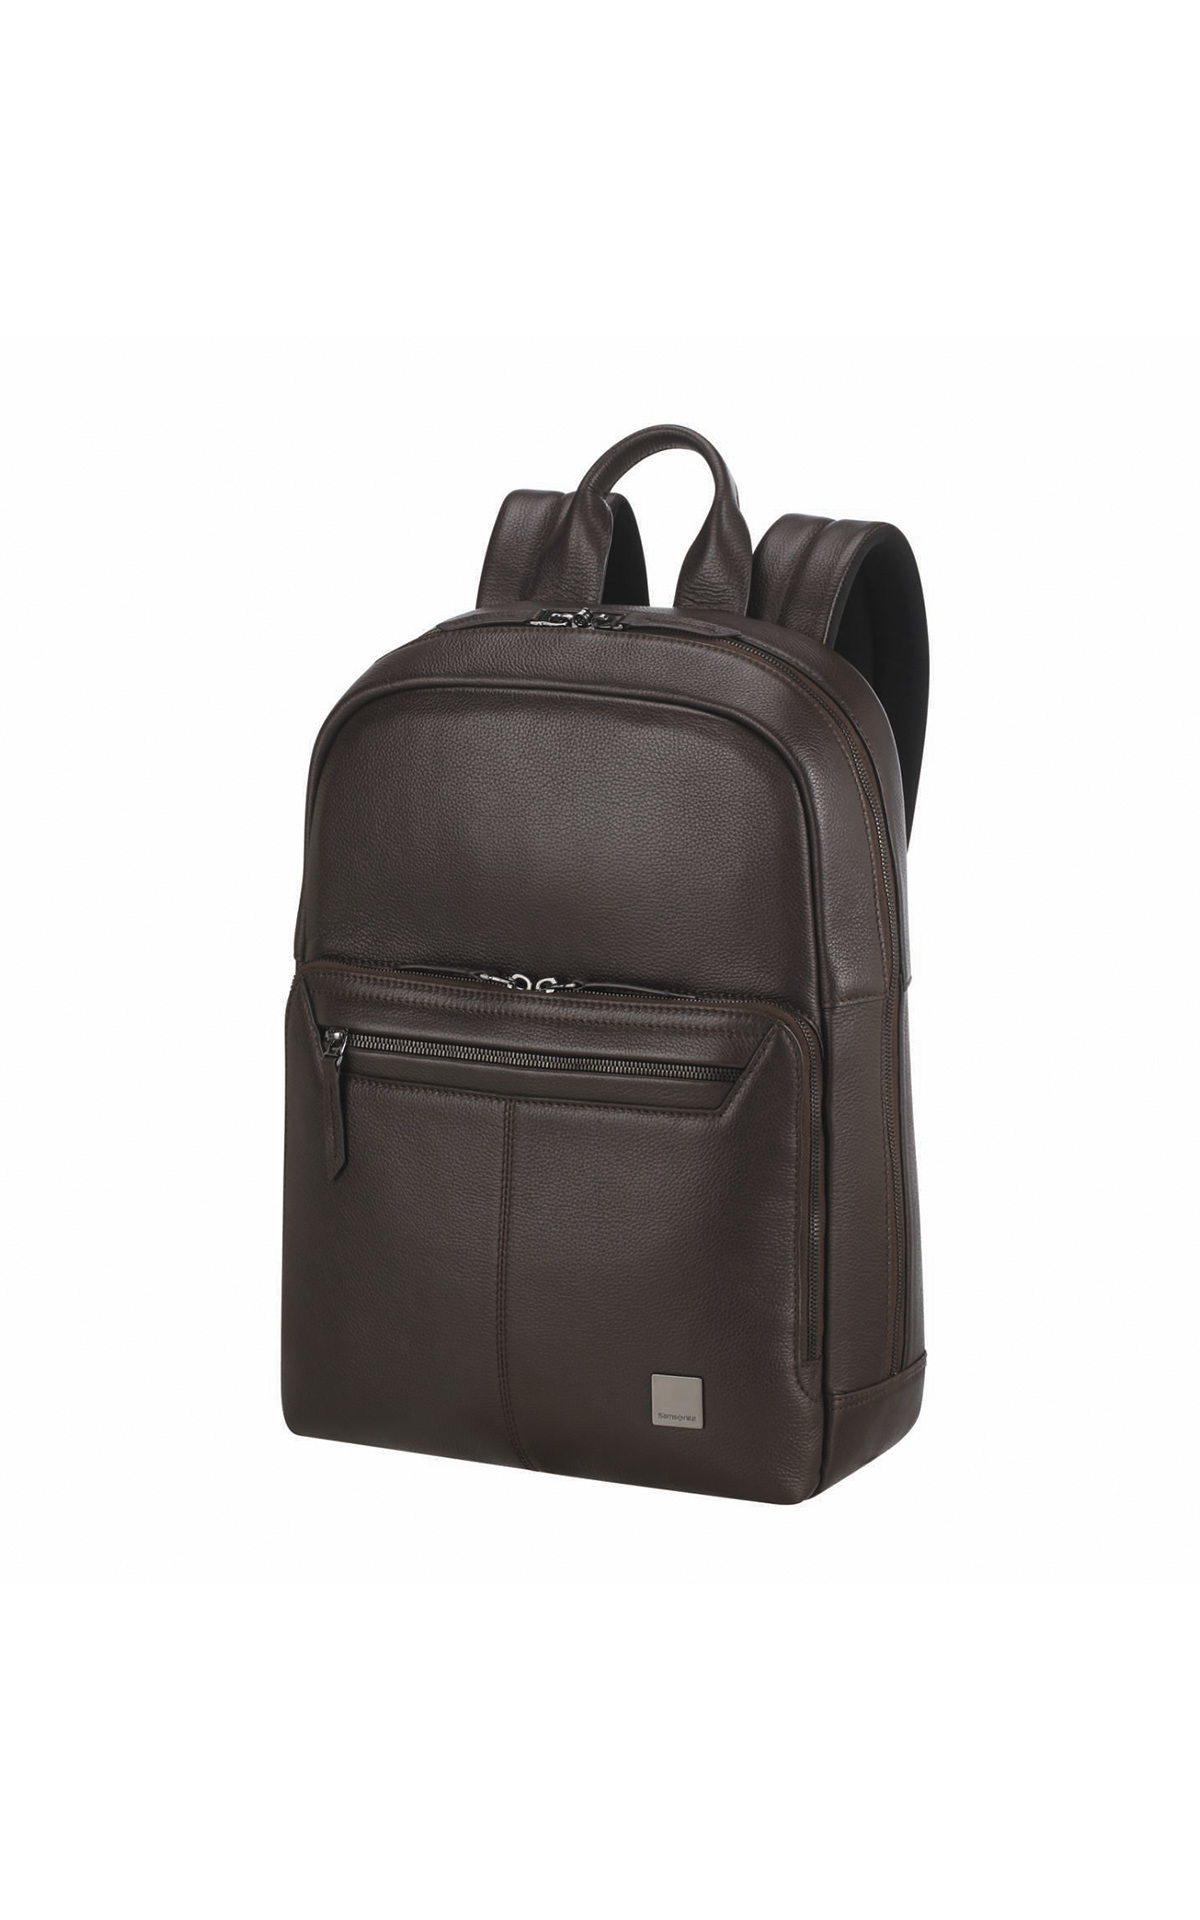 Brown leather backpack Samsonite